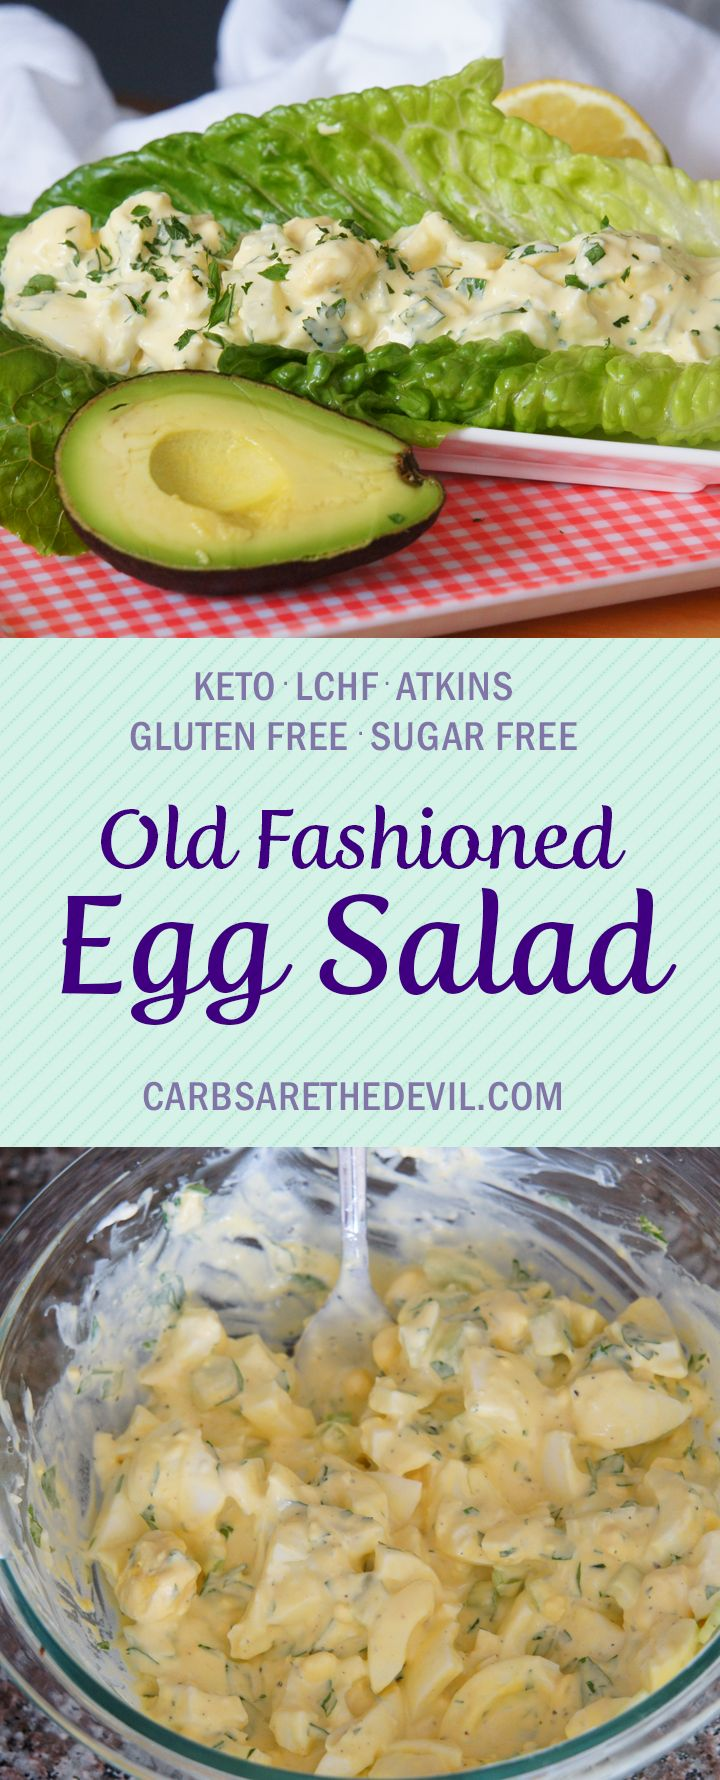 Old Fashioned Egg Salad | Recipe | Celery, Eggs and Mayonnaise